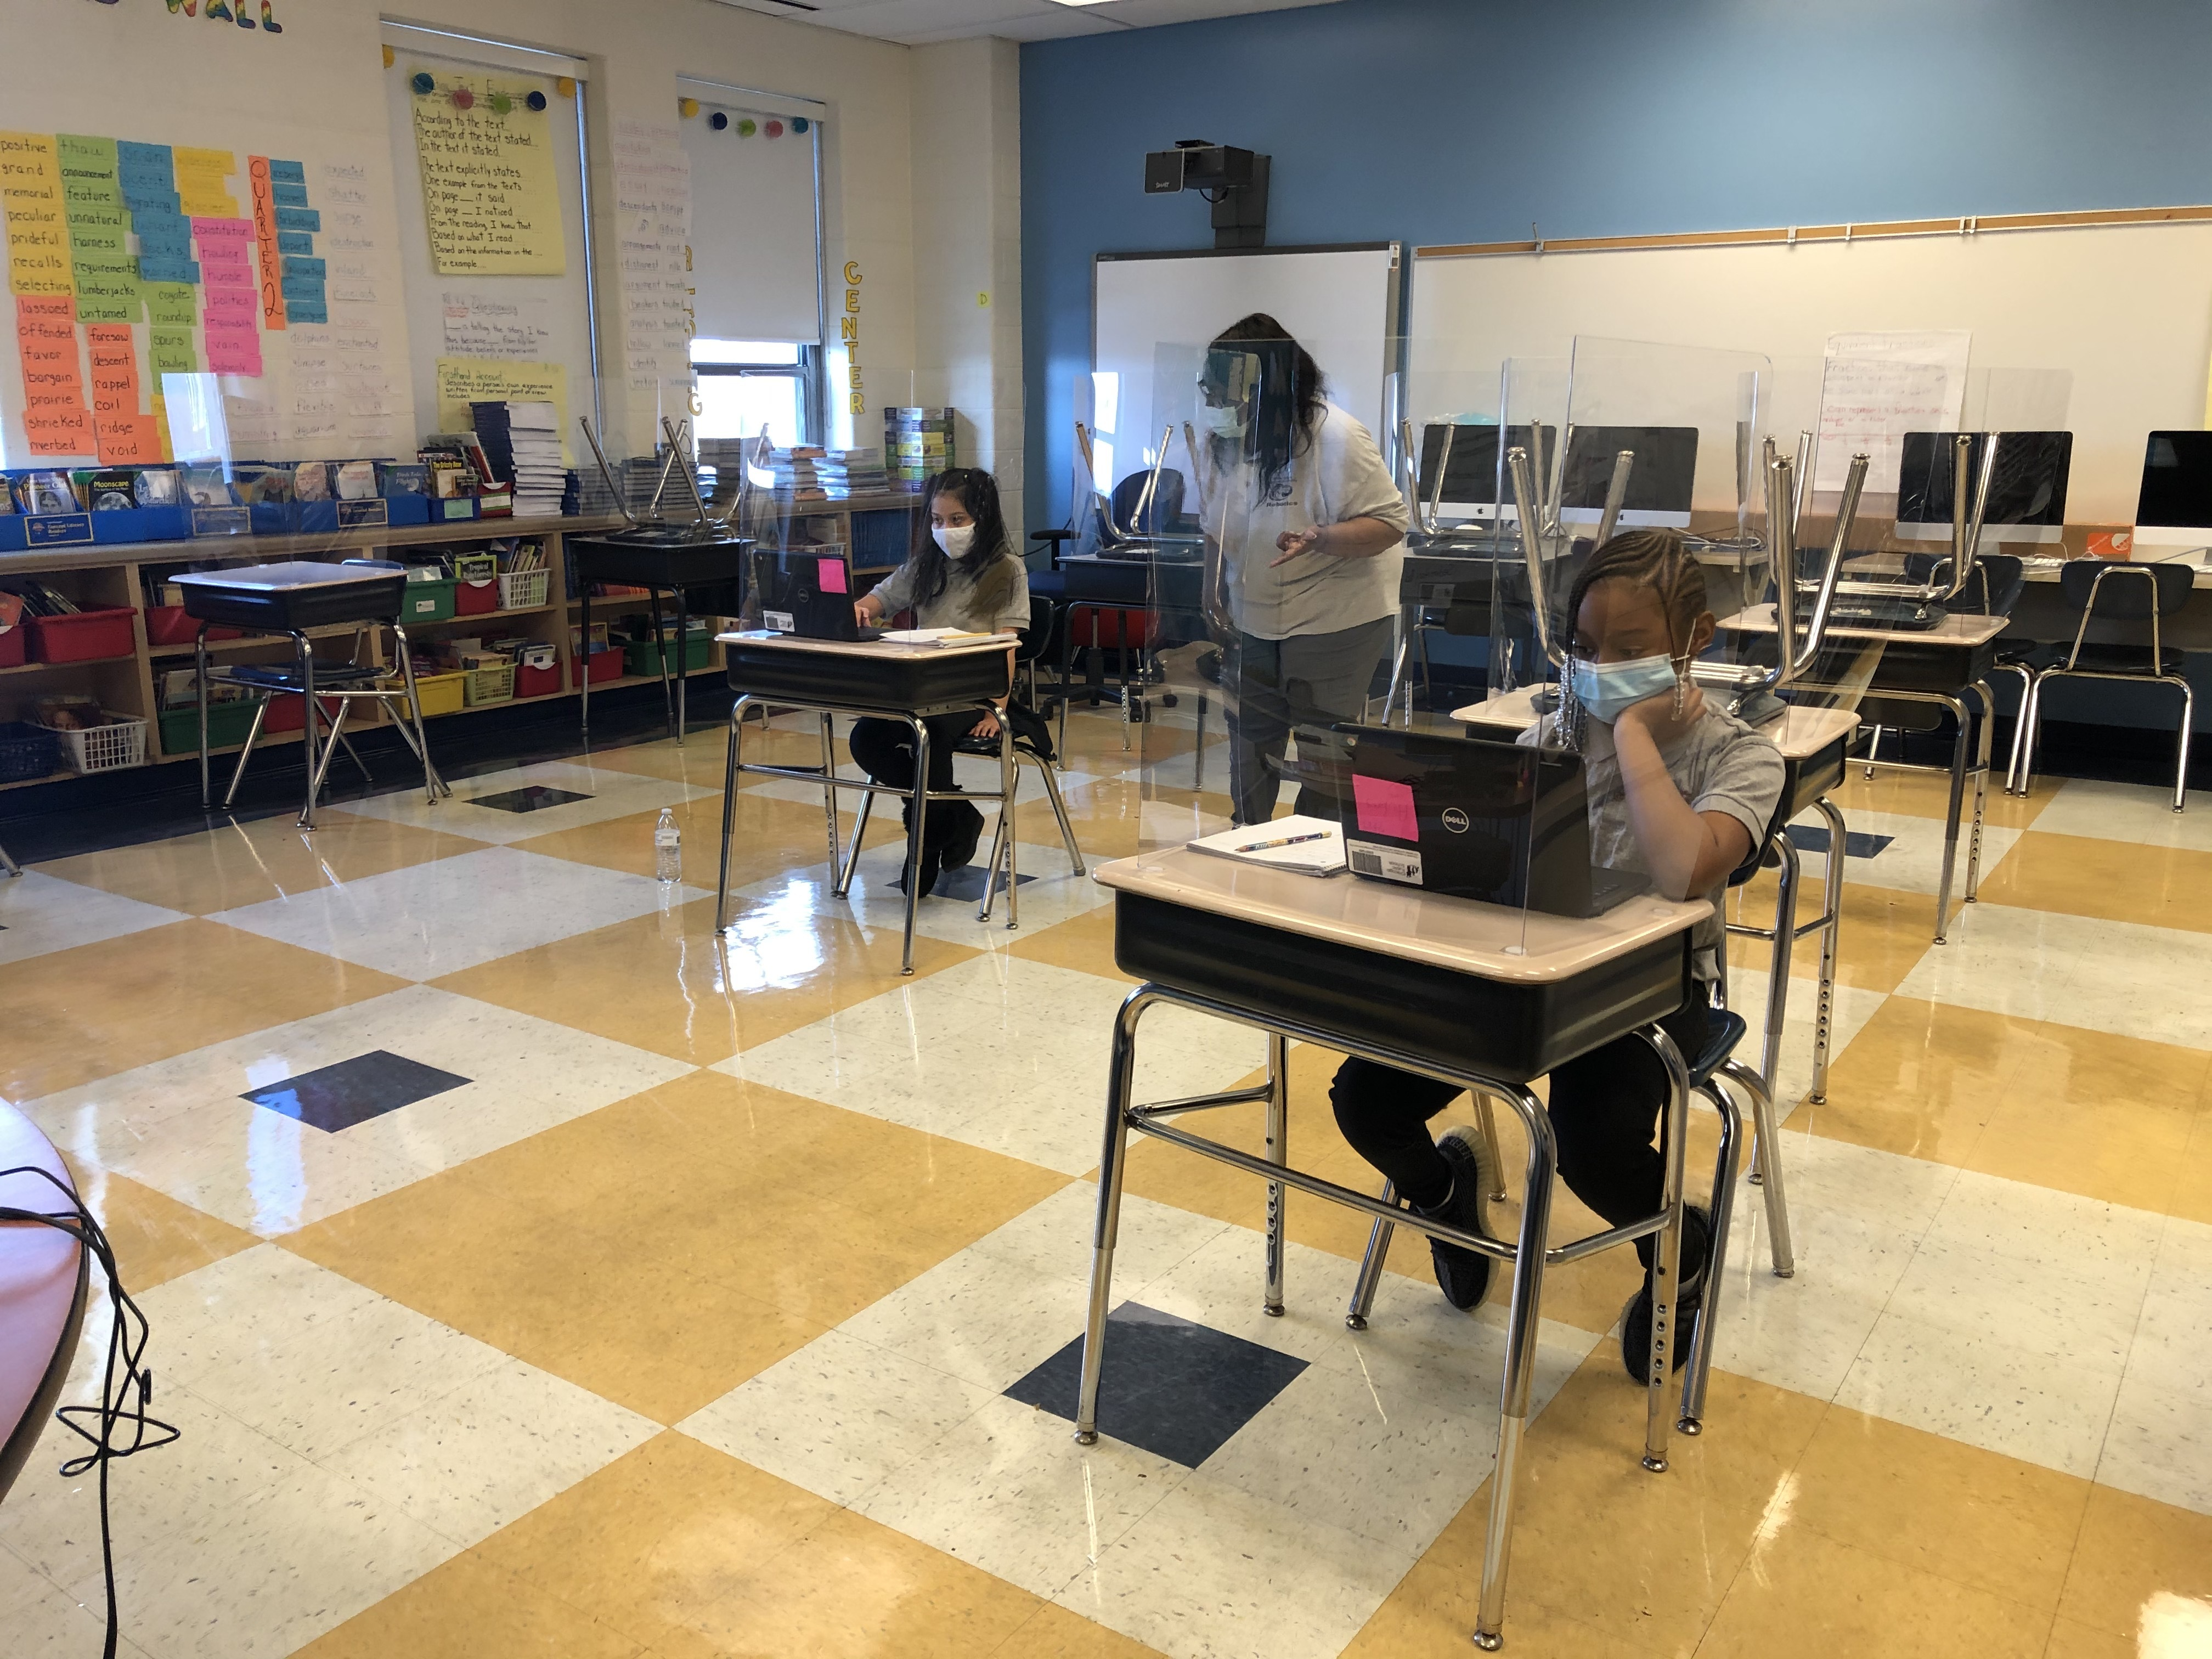 Students wearing face masks sit at desks behind plastic shields in a Chicago classroom with a yellow, cream, and black checkerboard floor and a blue wall. They are working on laptop computers as a teacher wearing a white top watches.